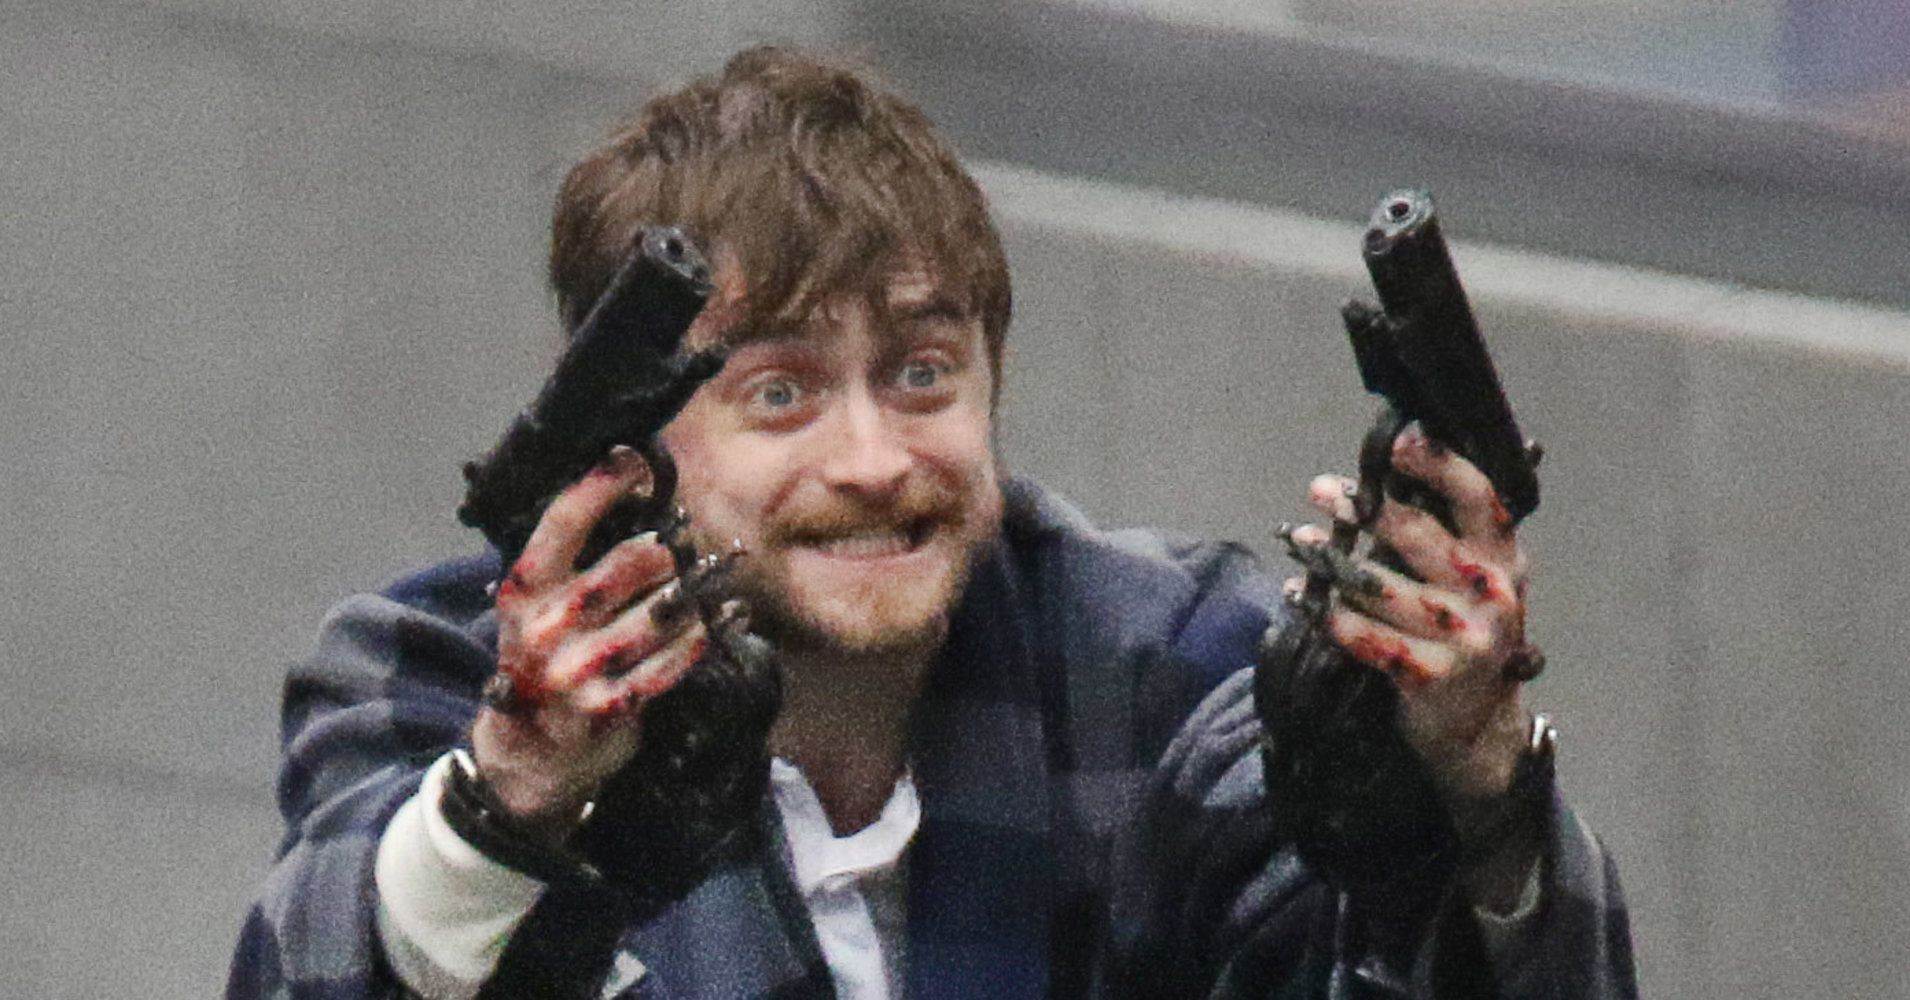 Photo Of Daniel Radcliffe Holding Guns In Crazy Slippers Becomes A Magical Meme Daniel Radcliffe Comic Book Drawing Daniel